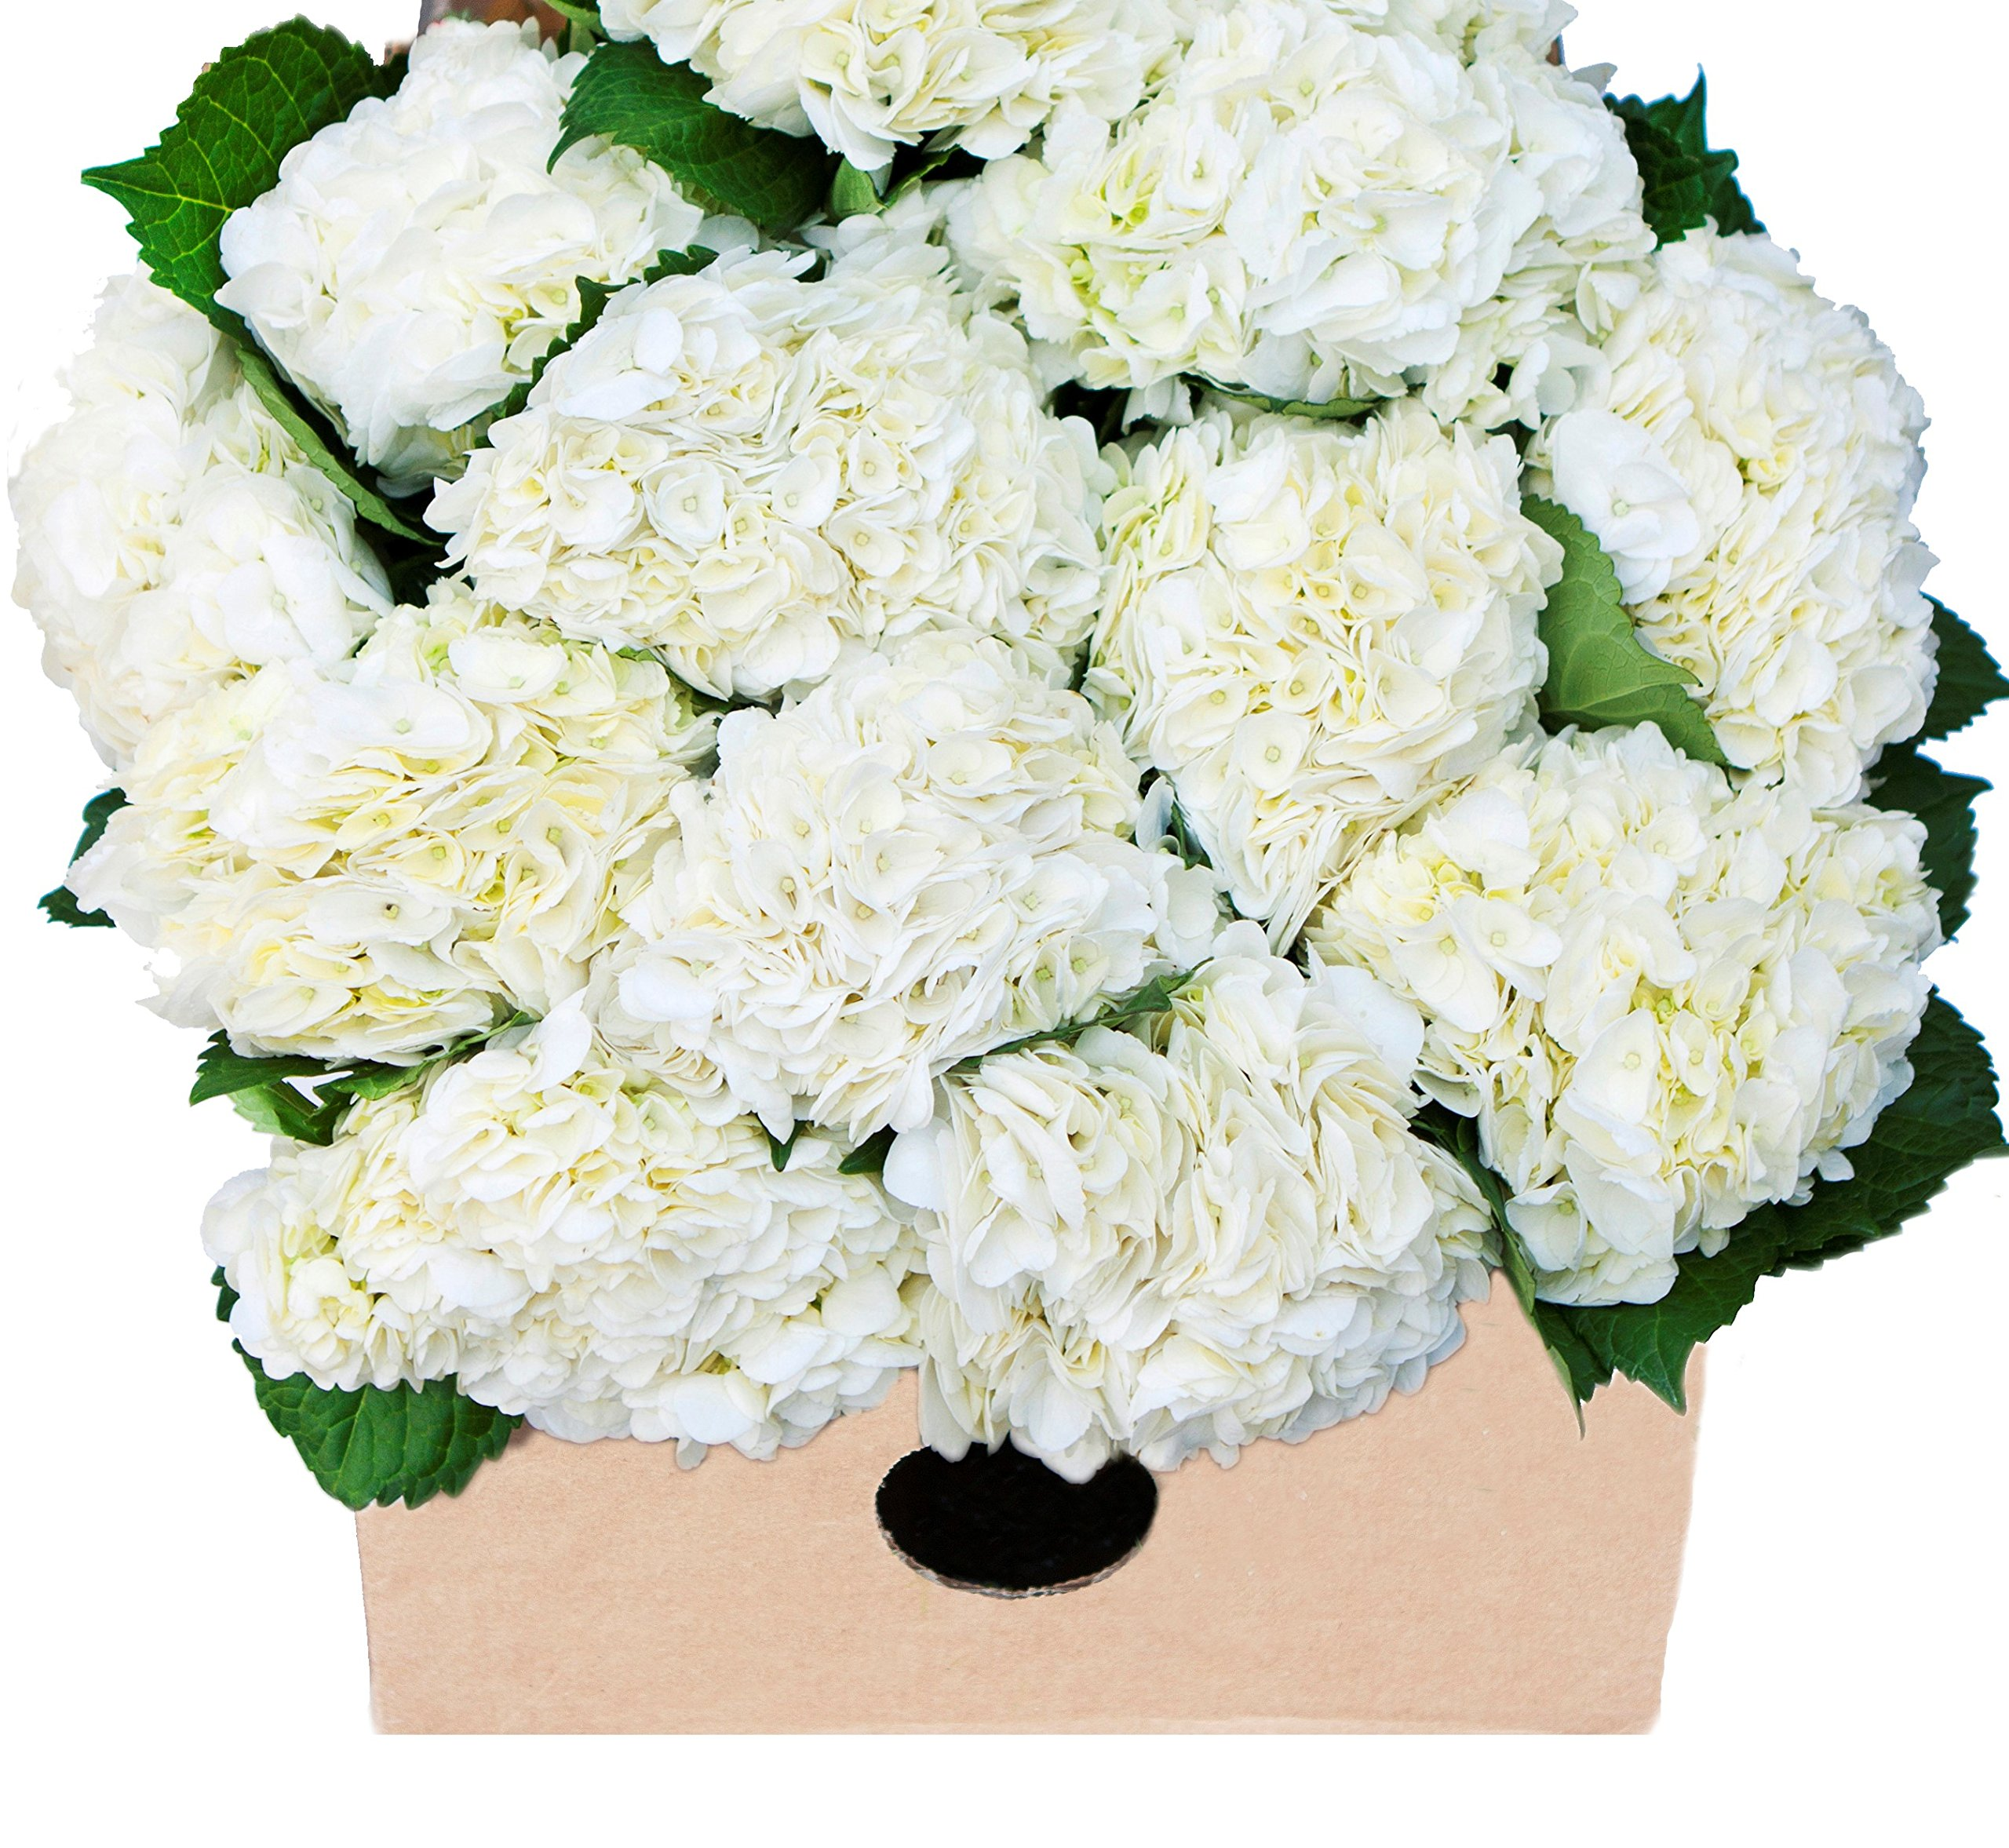 Blooms2Door 15 White Hydrangeas (Farm-Fresh, Naturally Colored, Premium Quality) by Blooms2Door